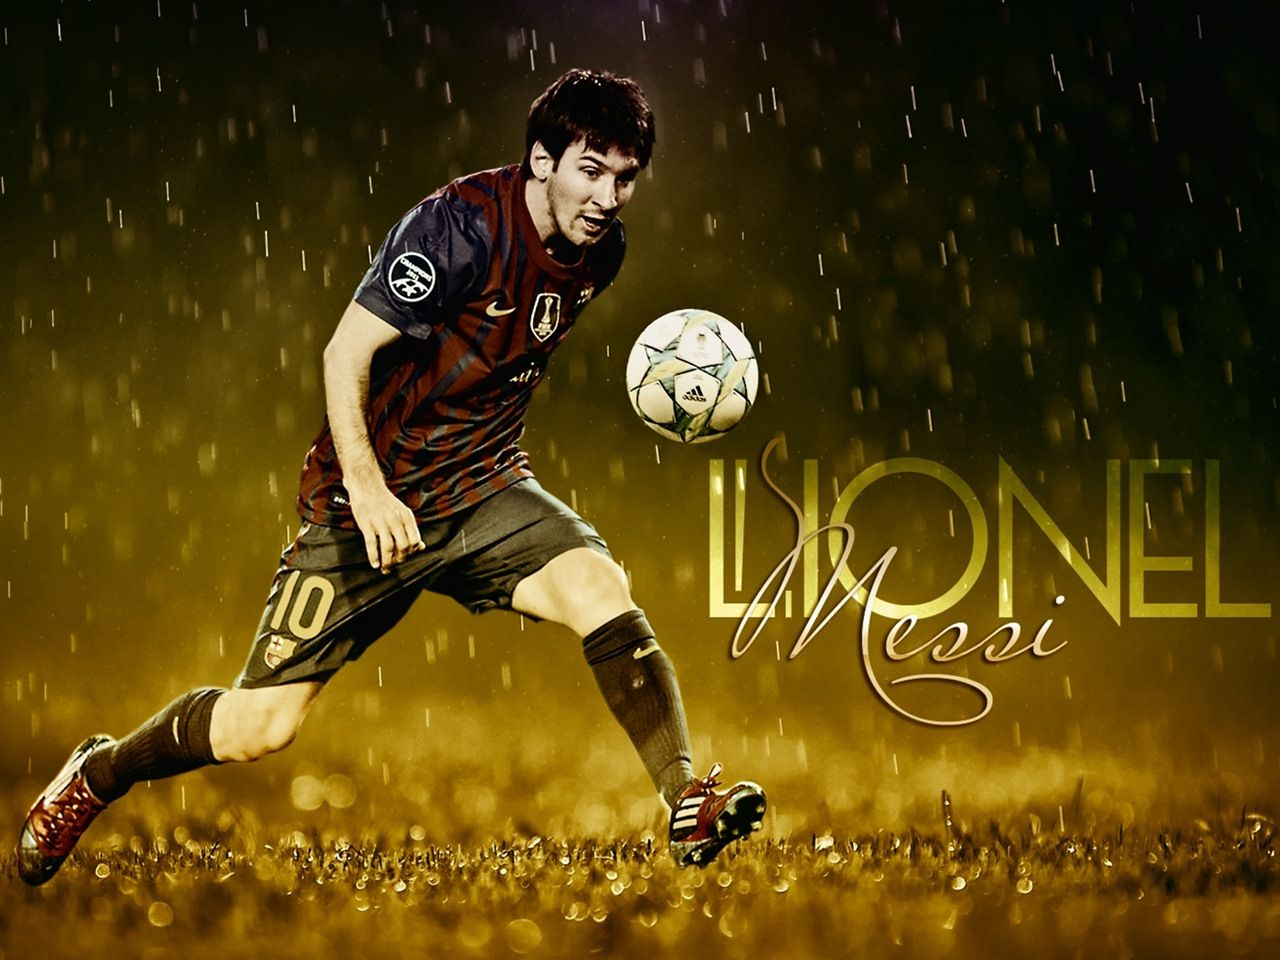 lionel messi hd soccer wallpaper - http://www.wallpapersoccer